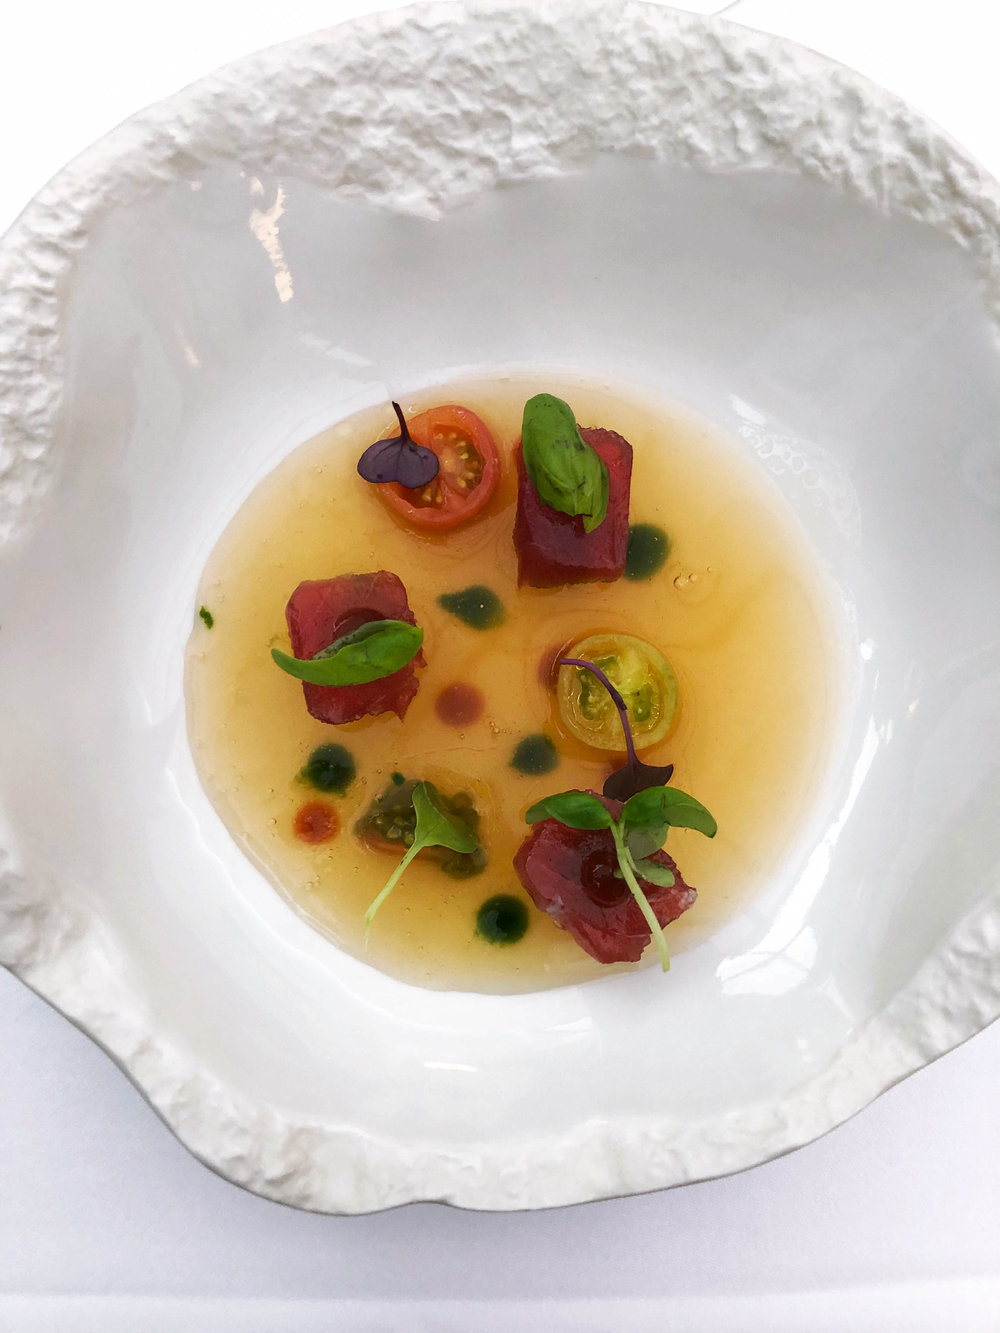 Chilled smoked tomato and basil consomme with marinated tuna, plankton and rosehip. This was one of my favorites.